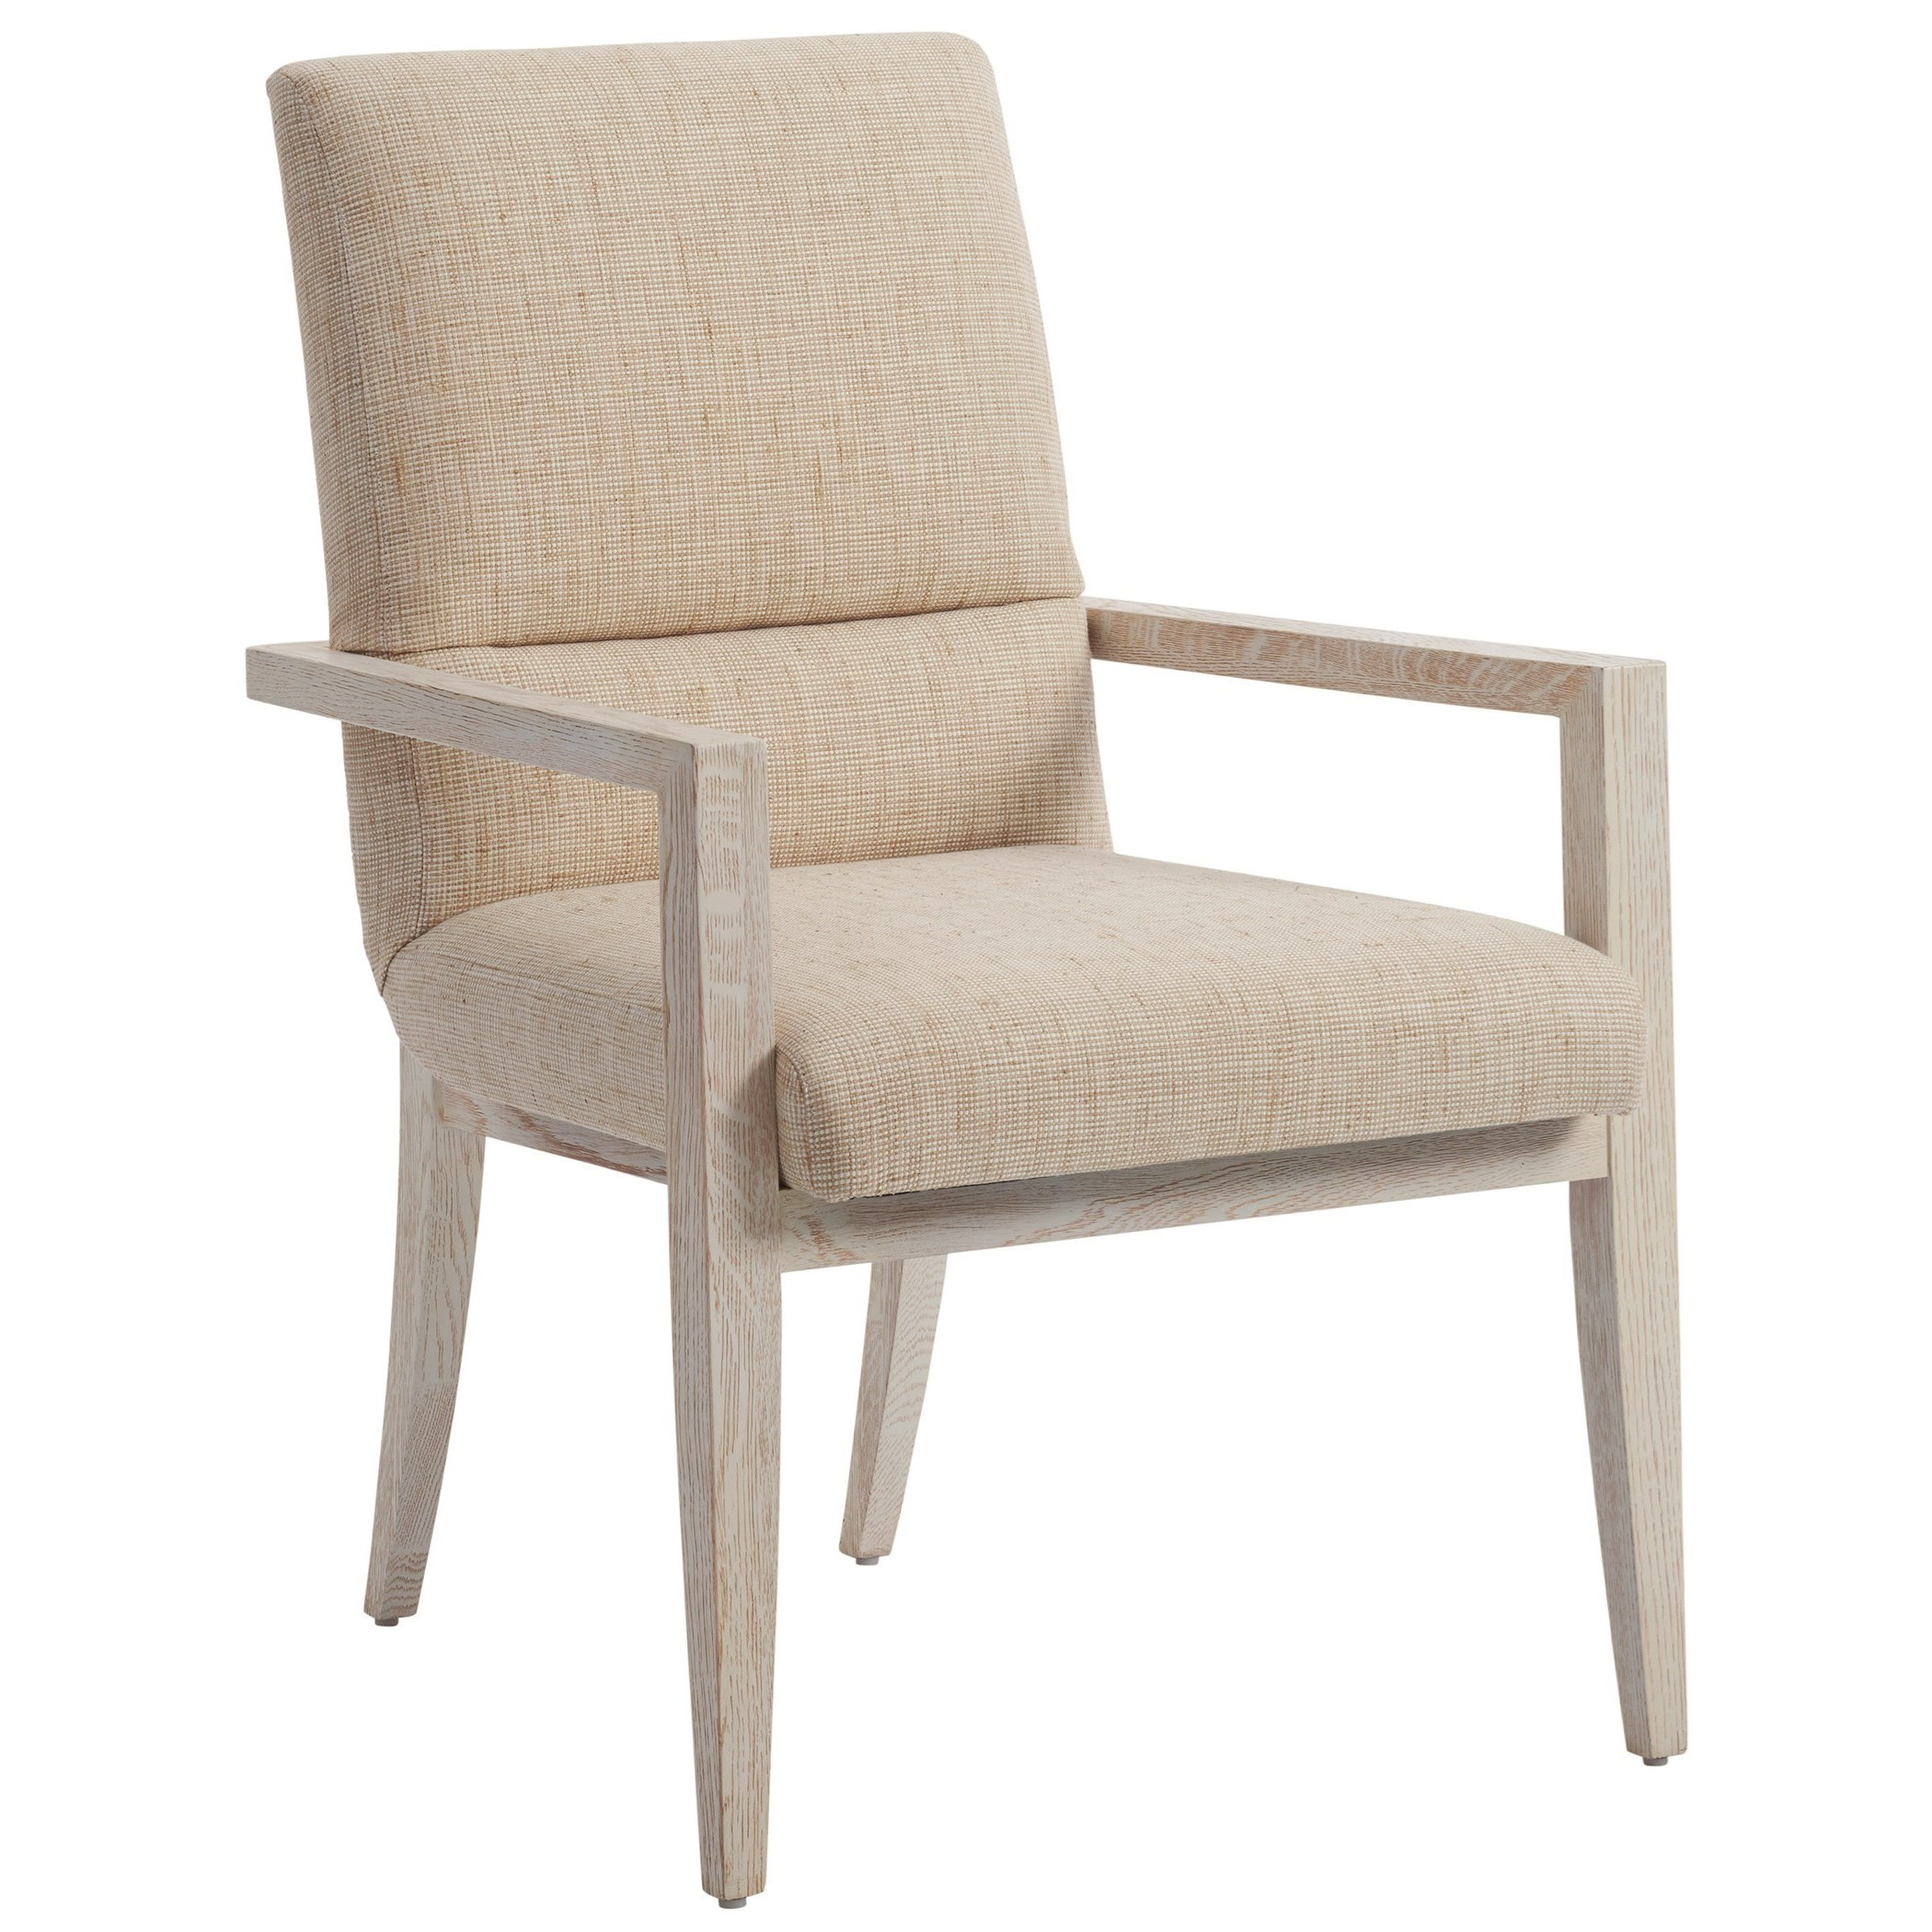 Carmel Palmero Upholstered Arm Chair by Barclay Butera at Baer's Furniture